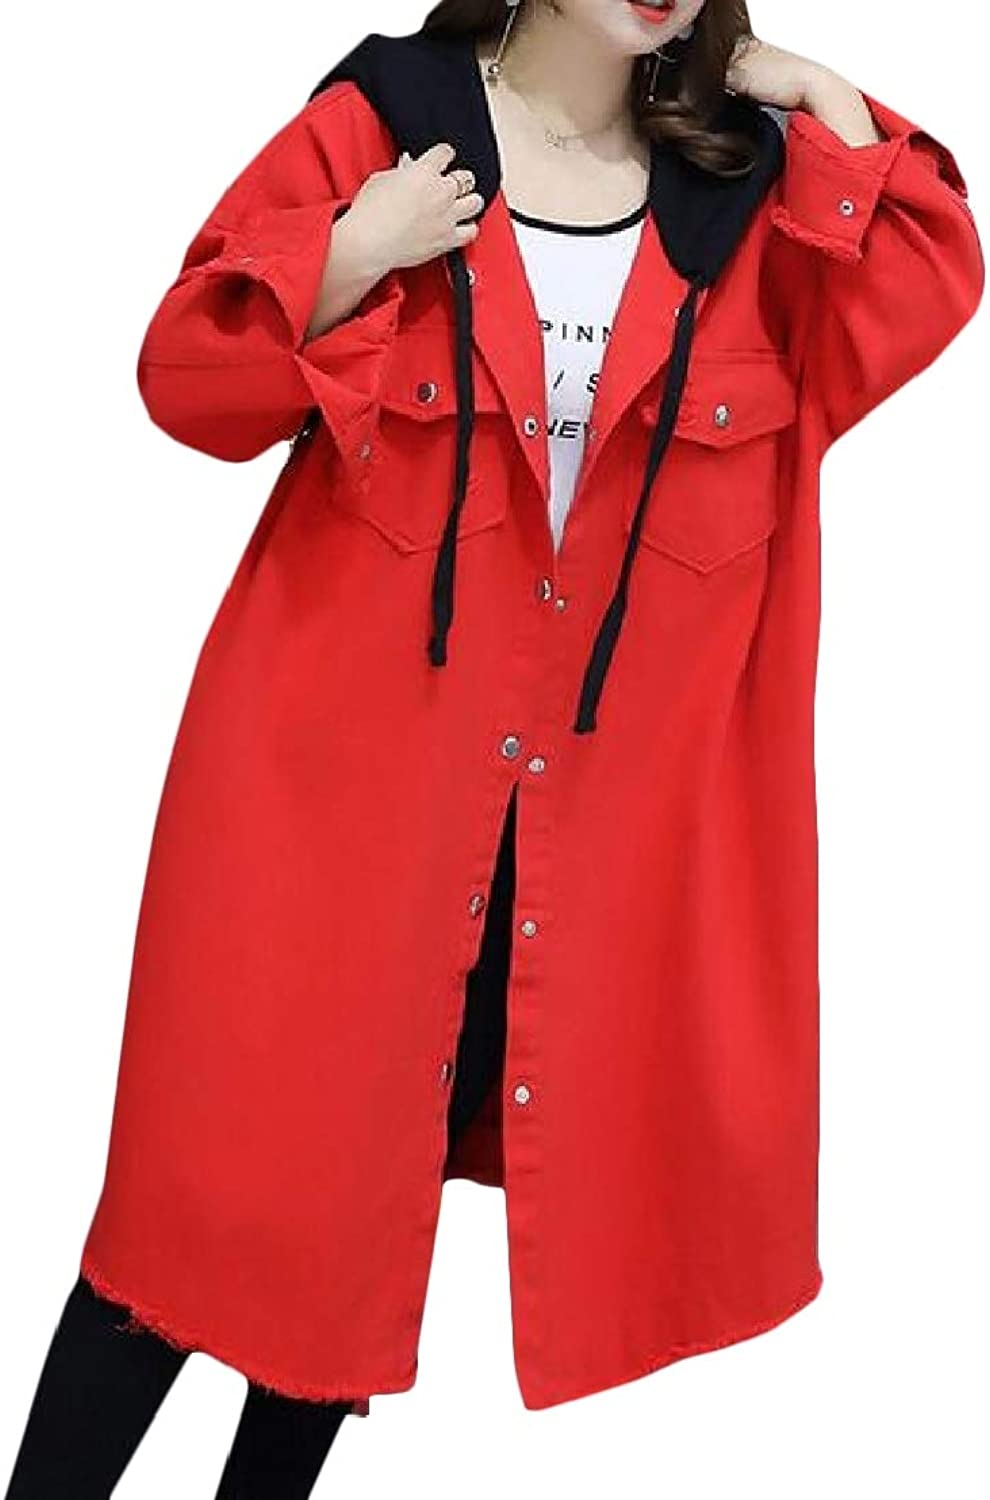 BESBOMIG Casual Trench Coat Lady Double Breasted Elegant Winter Jacket Keep Warm